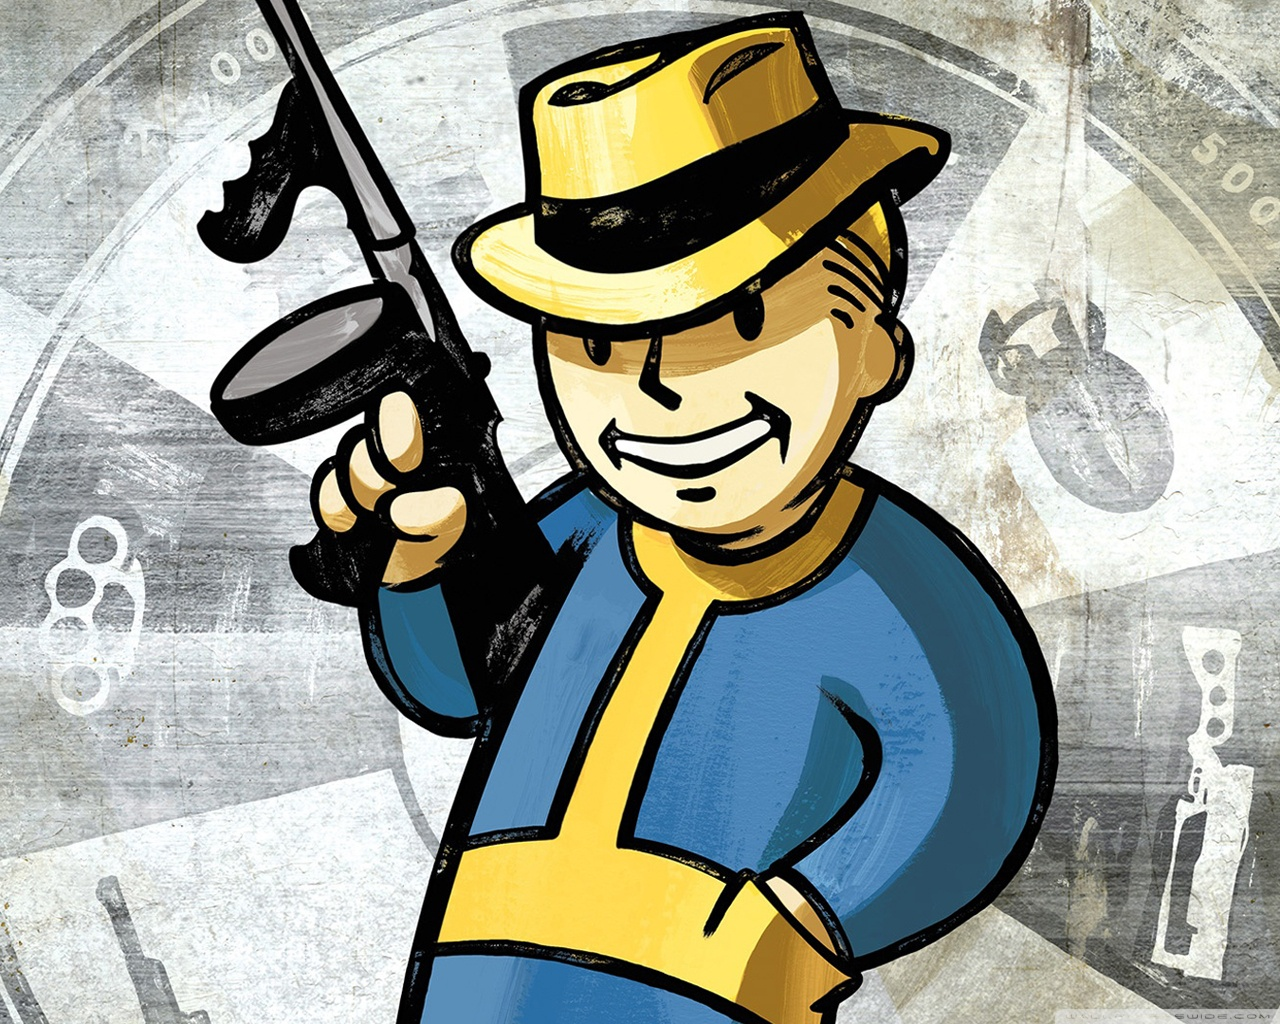 Vault_boy_new_vegas.png